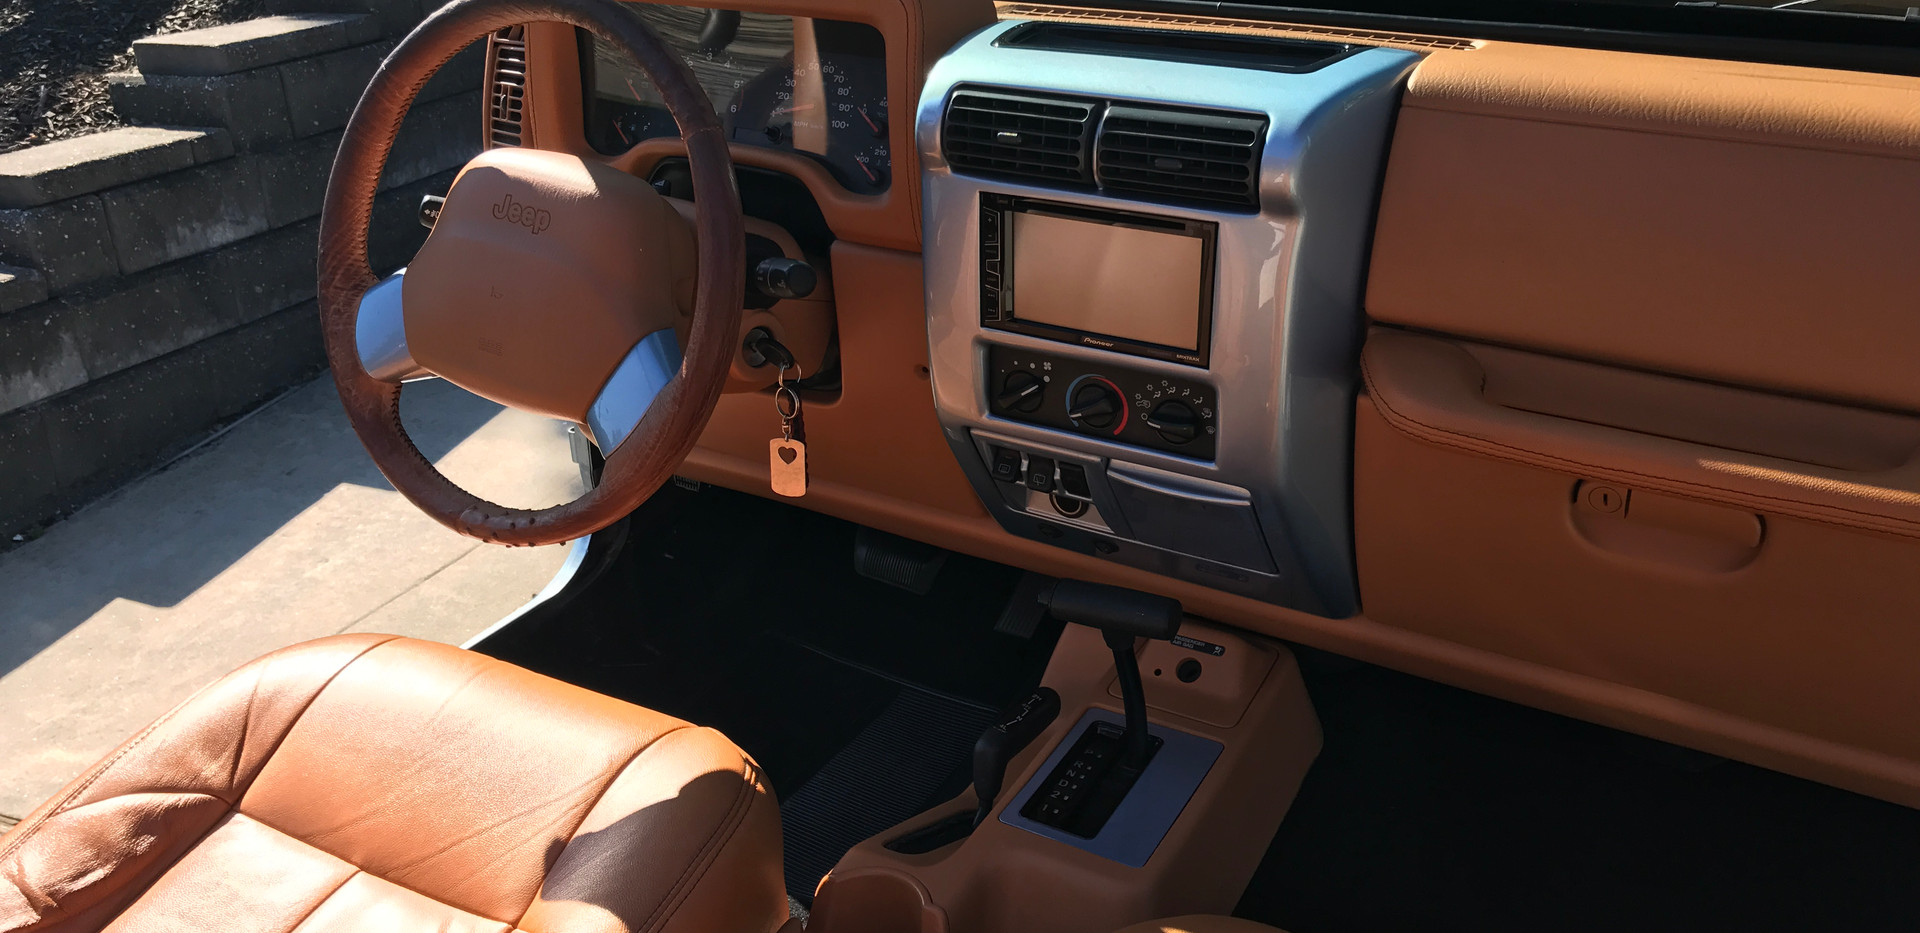 Tan and Blue Jeep Interior